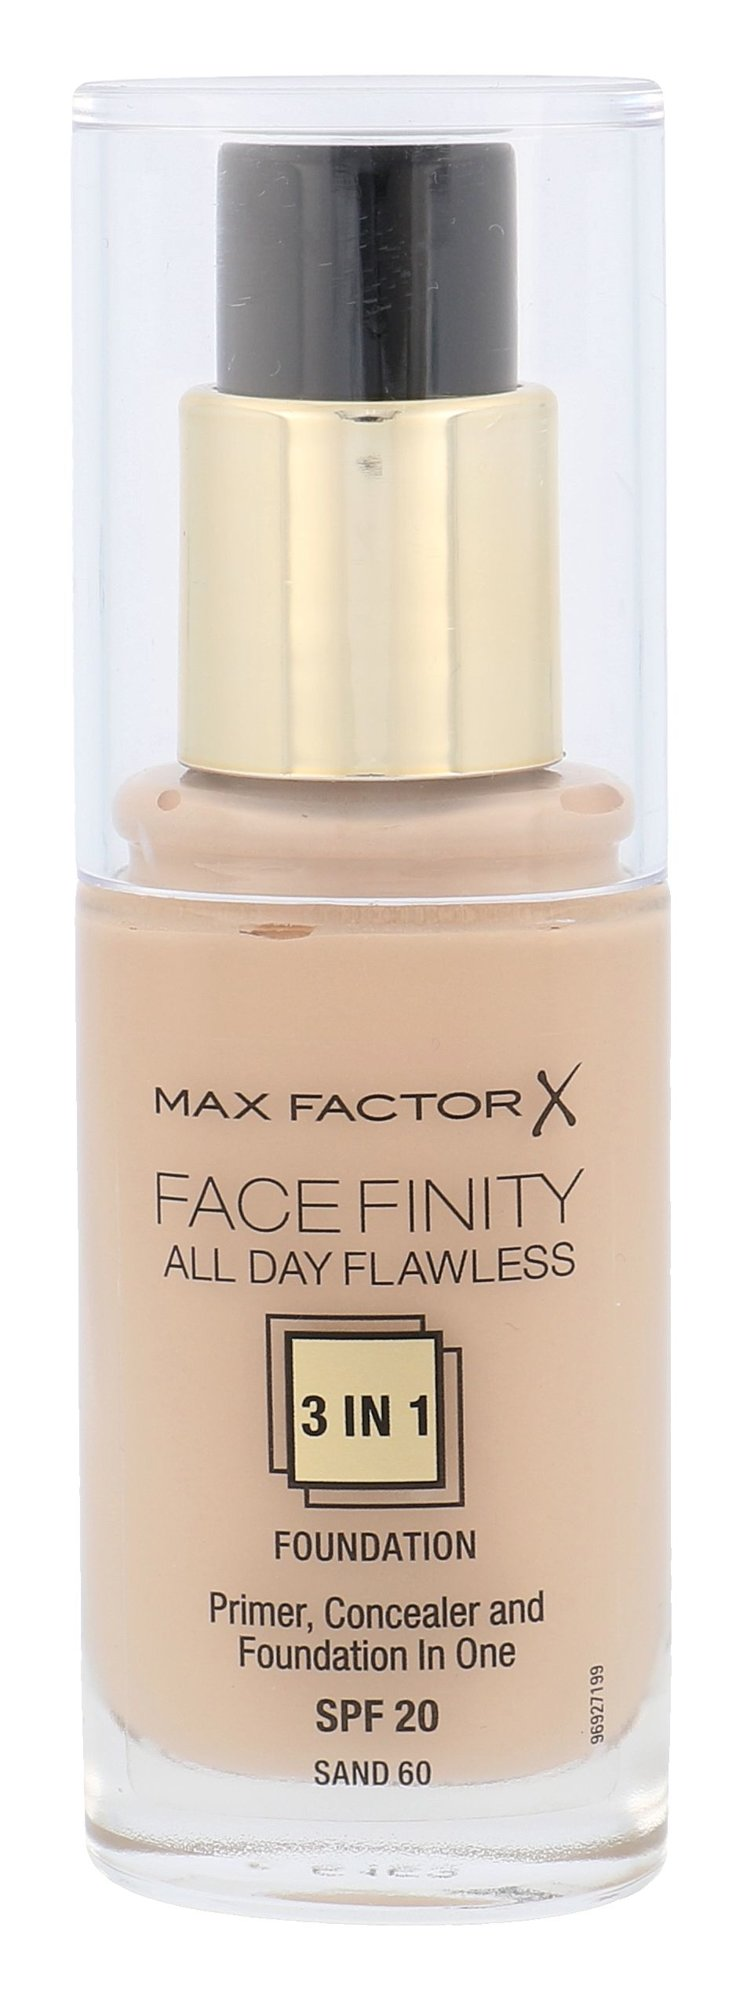 Max Factor Facefinity Cosmetic 30ml 60 Sand